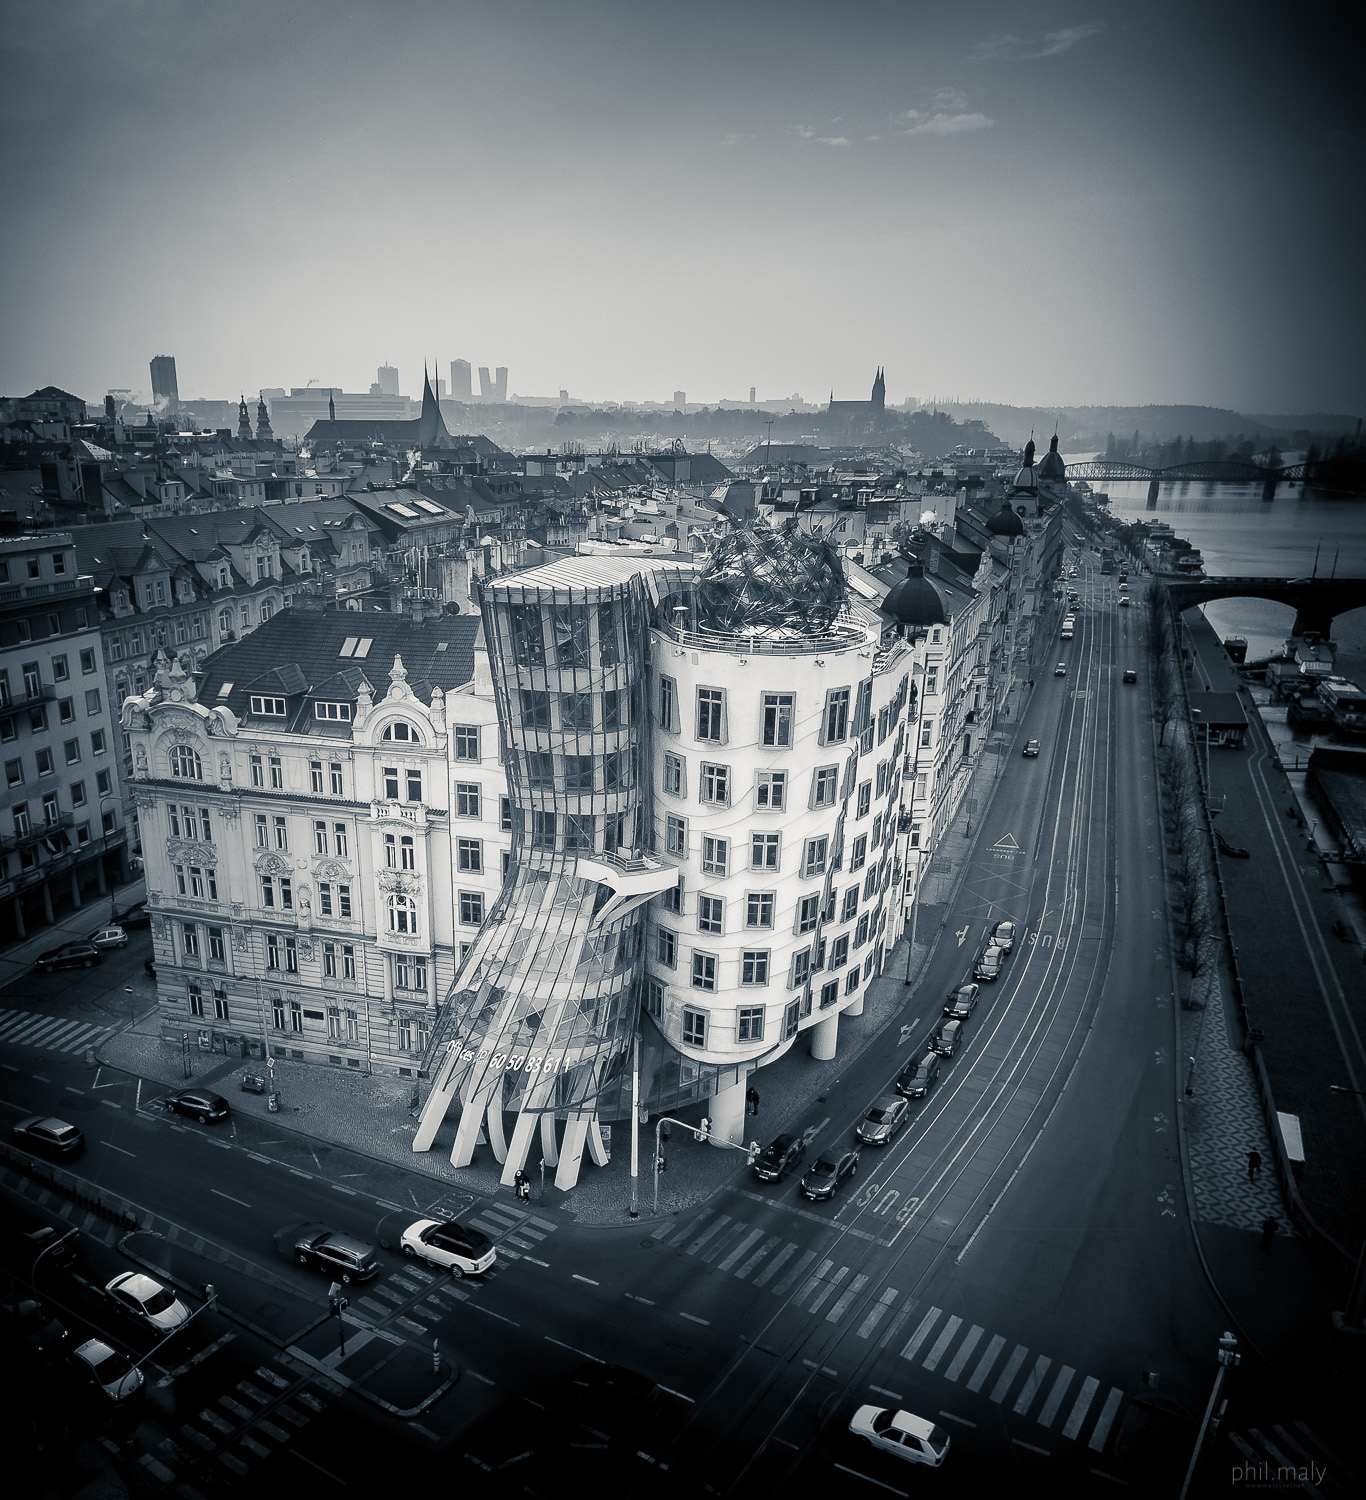 Drone shot of the Dancing House by Frank Gehry